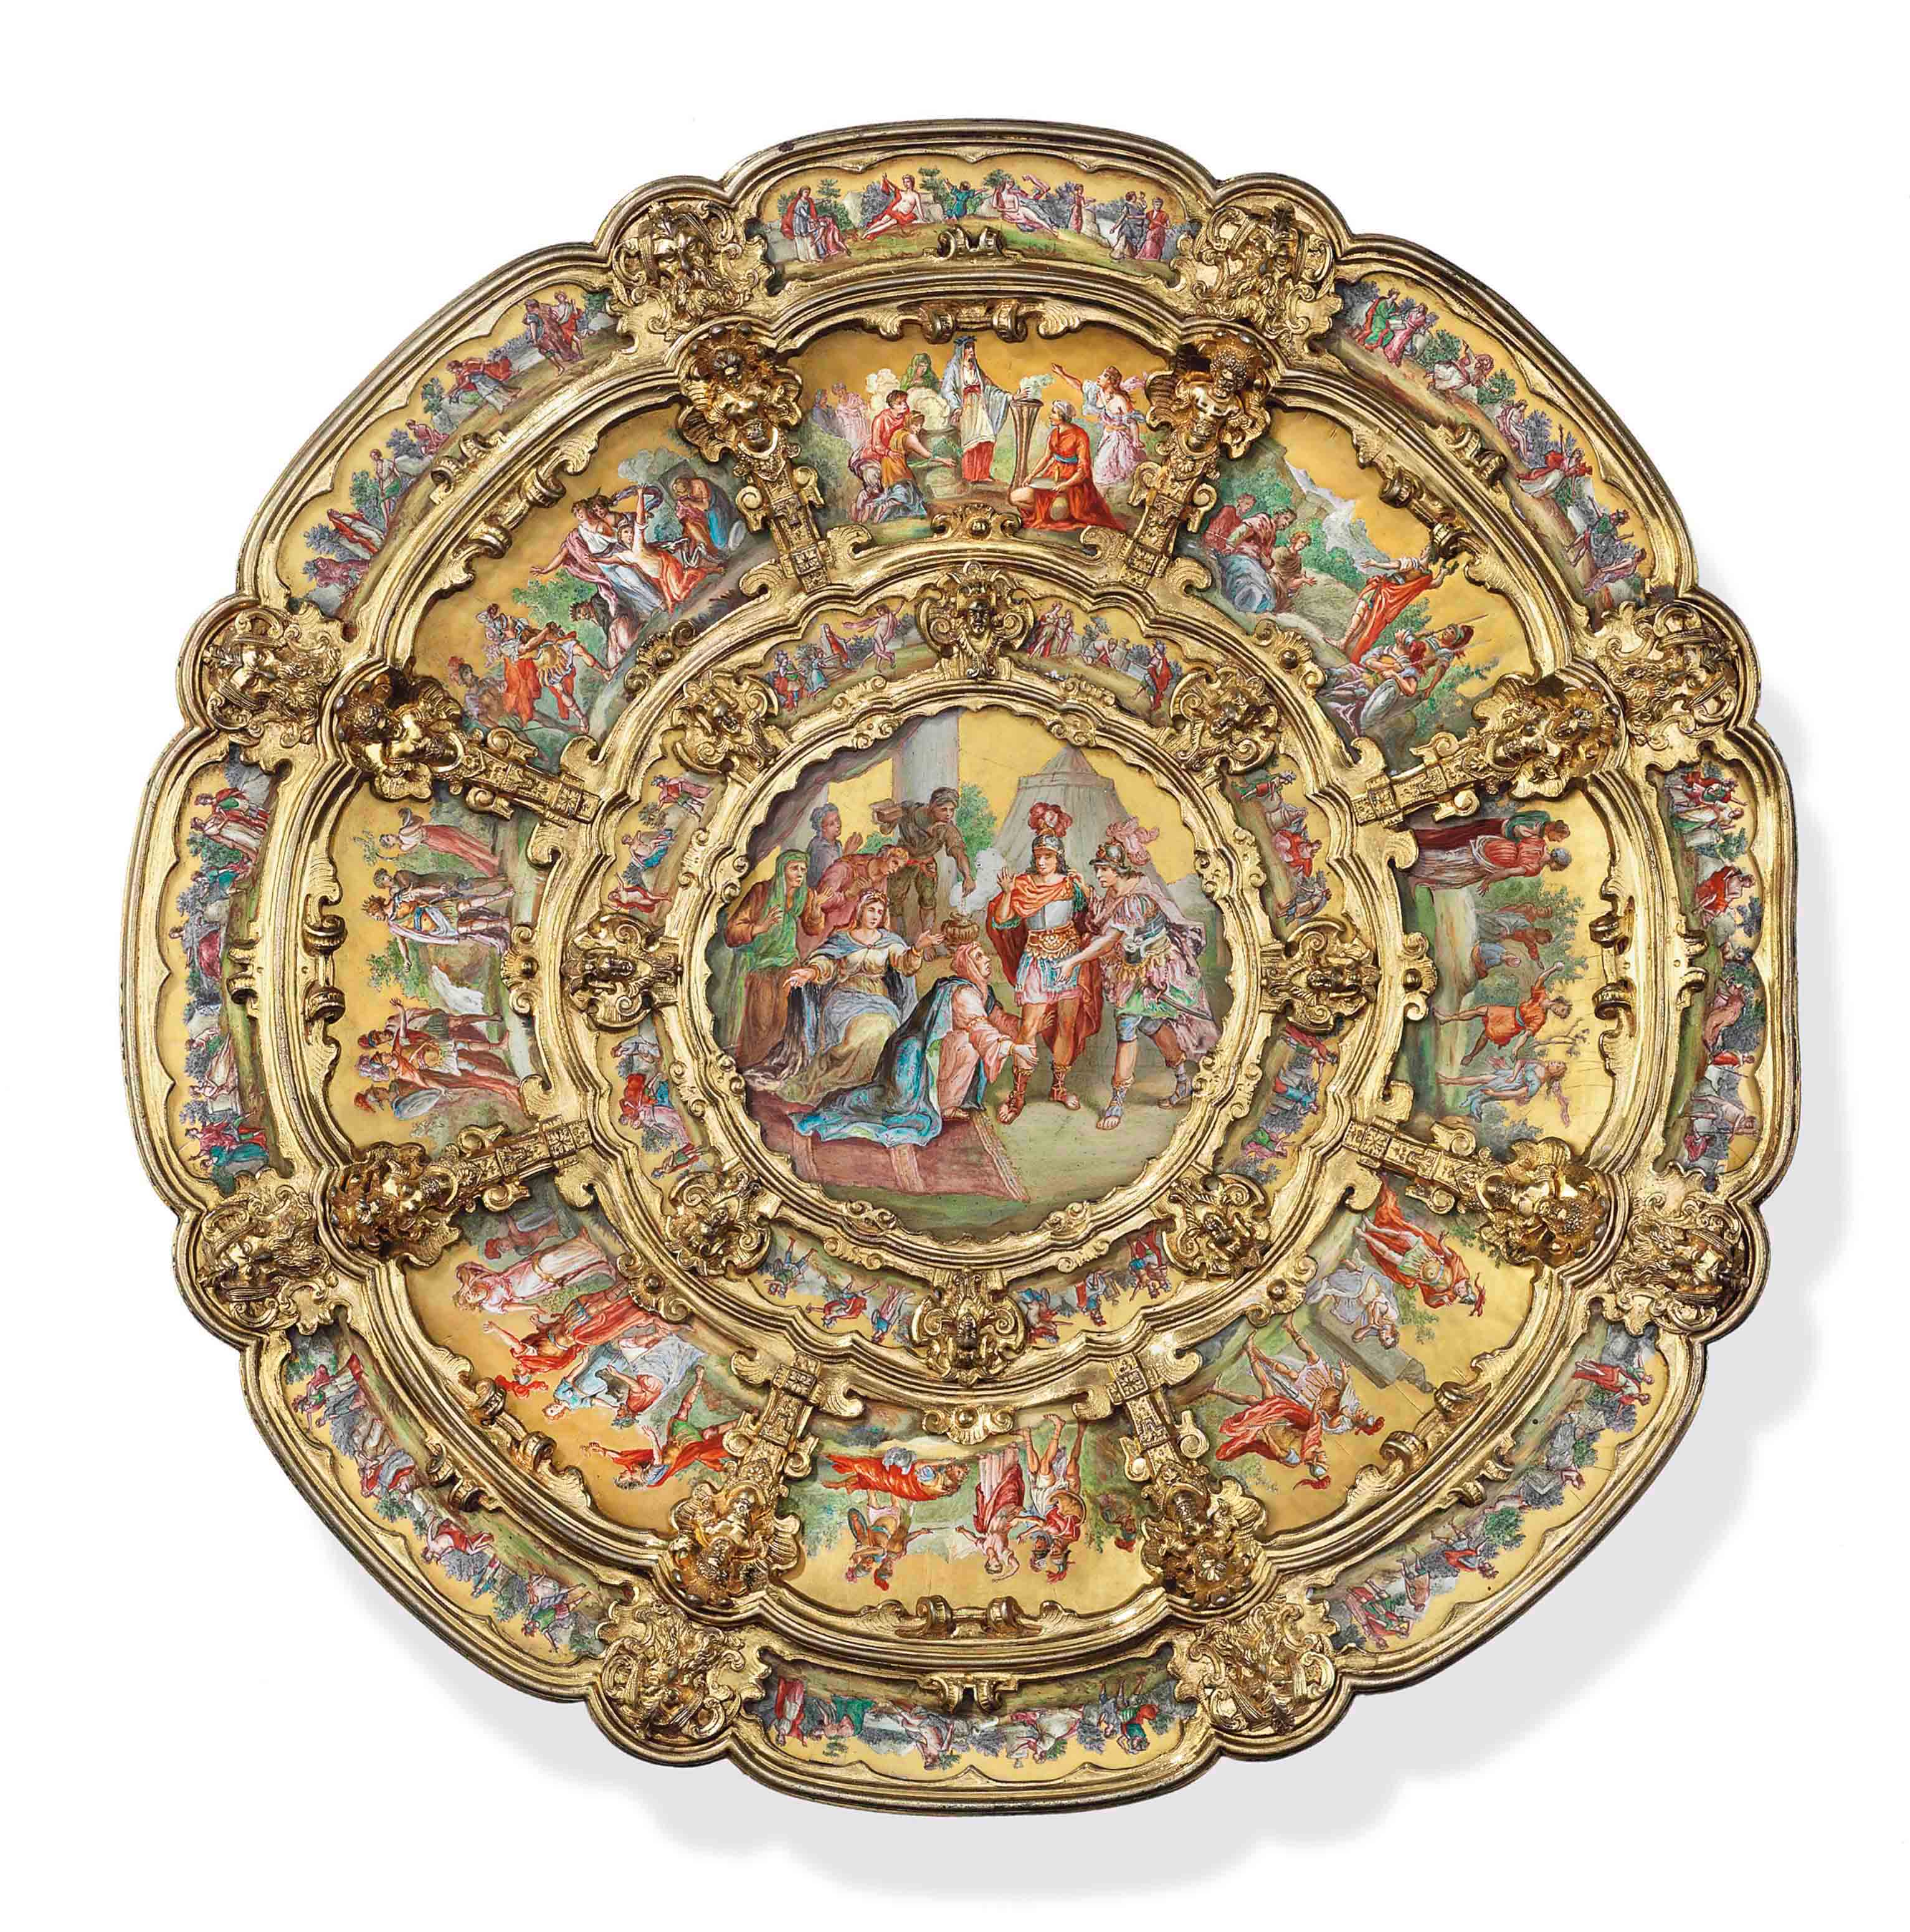 A VIENNESE SILVER-GILT AND ENAMEL CHARGER